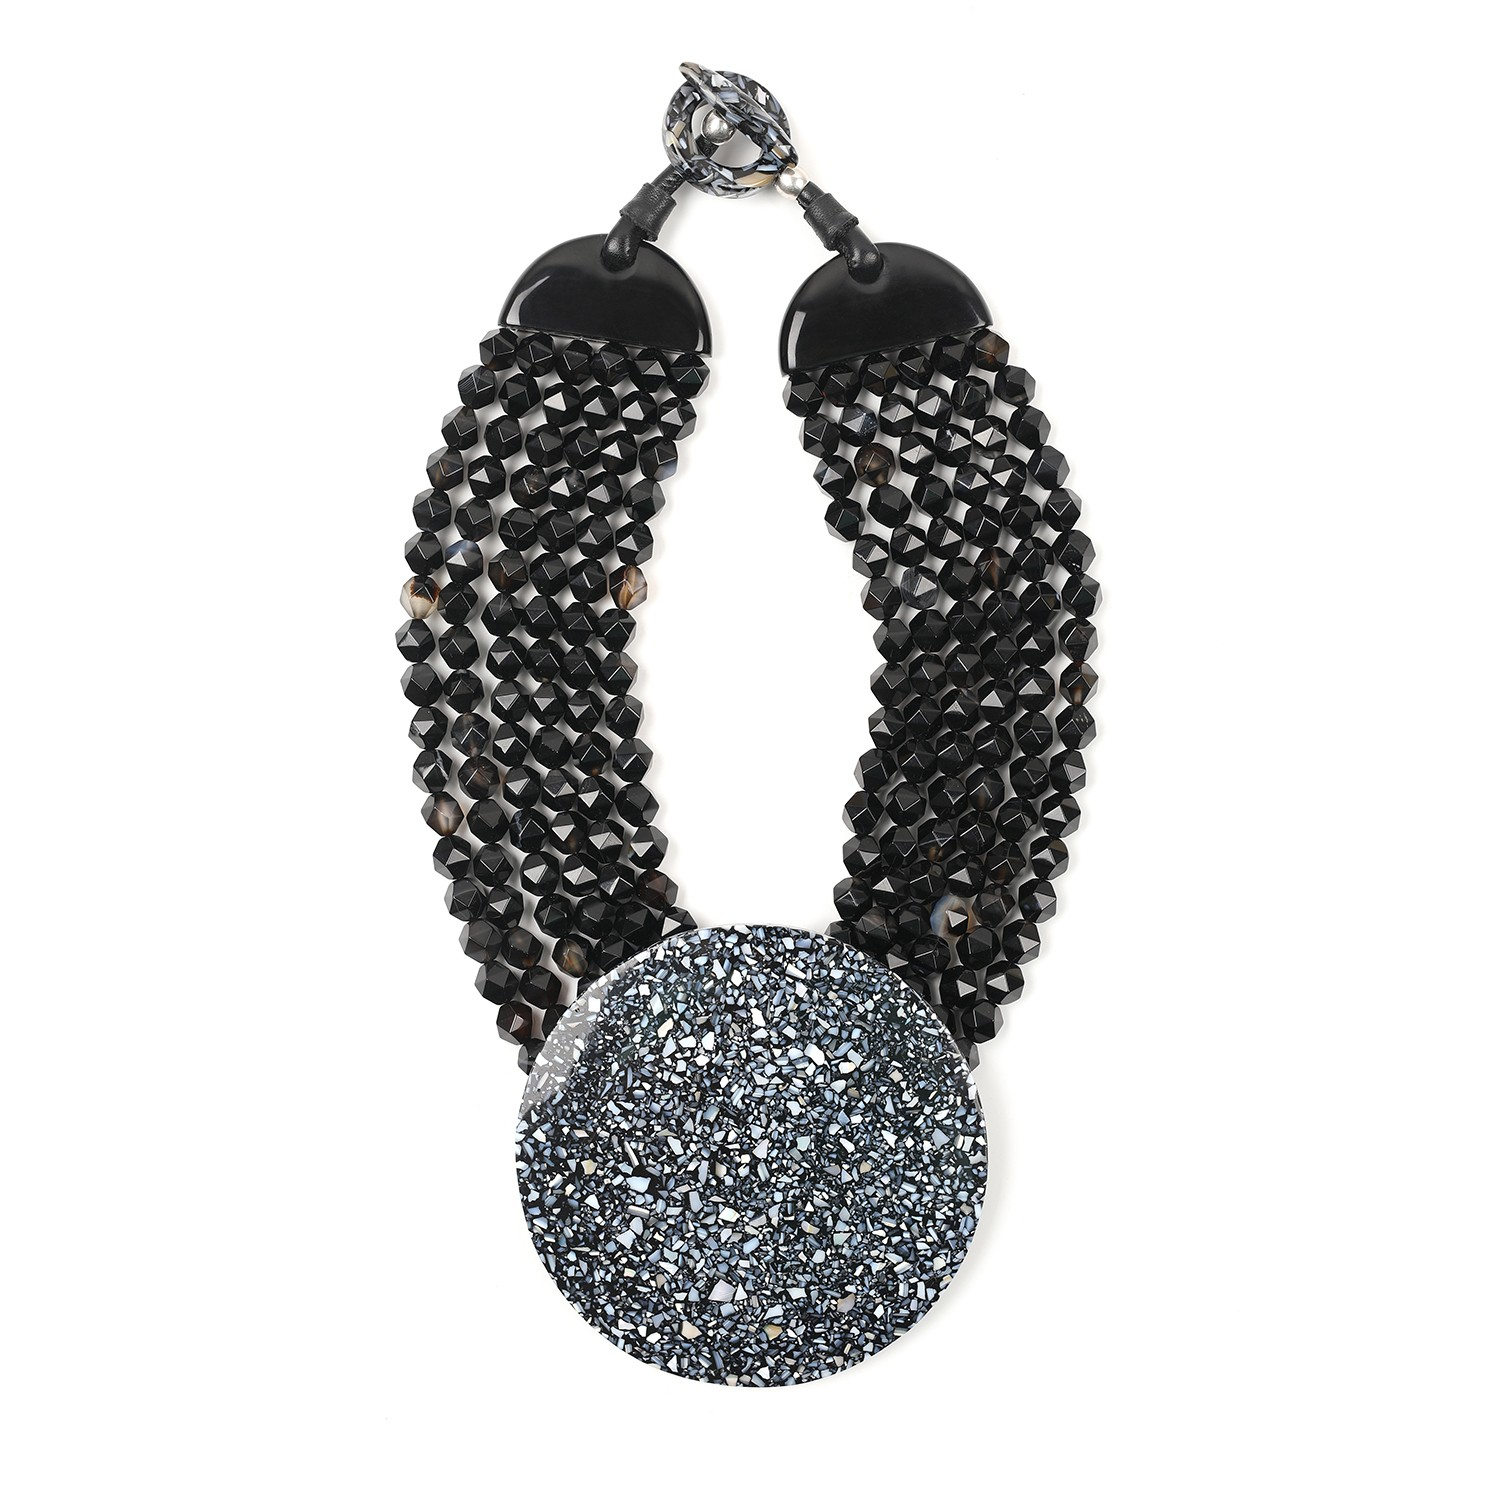 Necklace limited edition black terrazzo